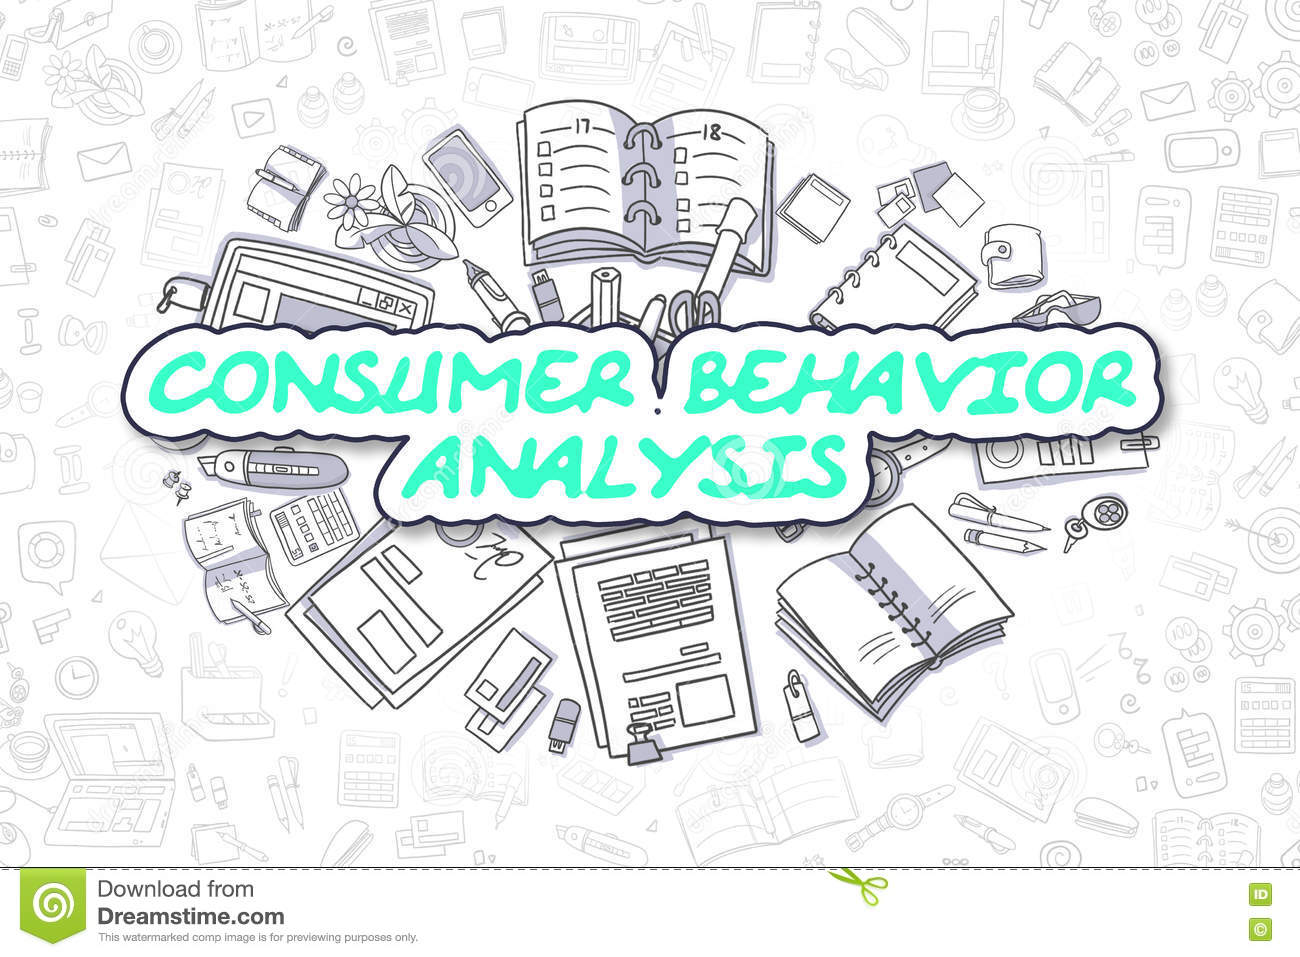 Consumer Behavior Analysis - Business Concept.